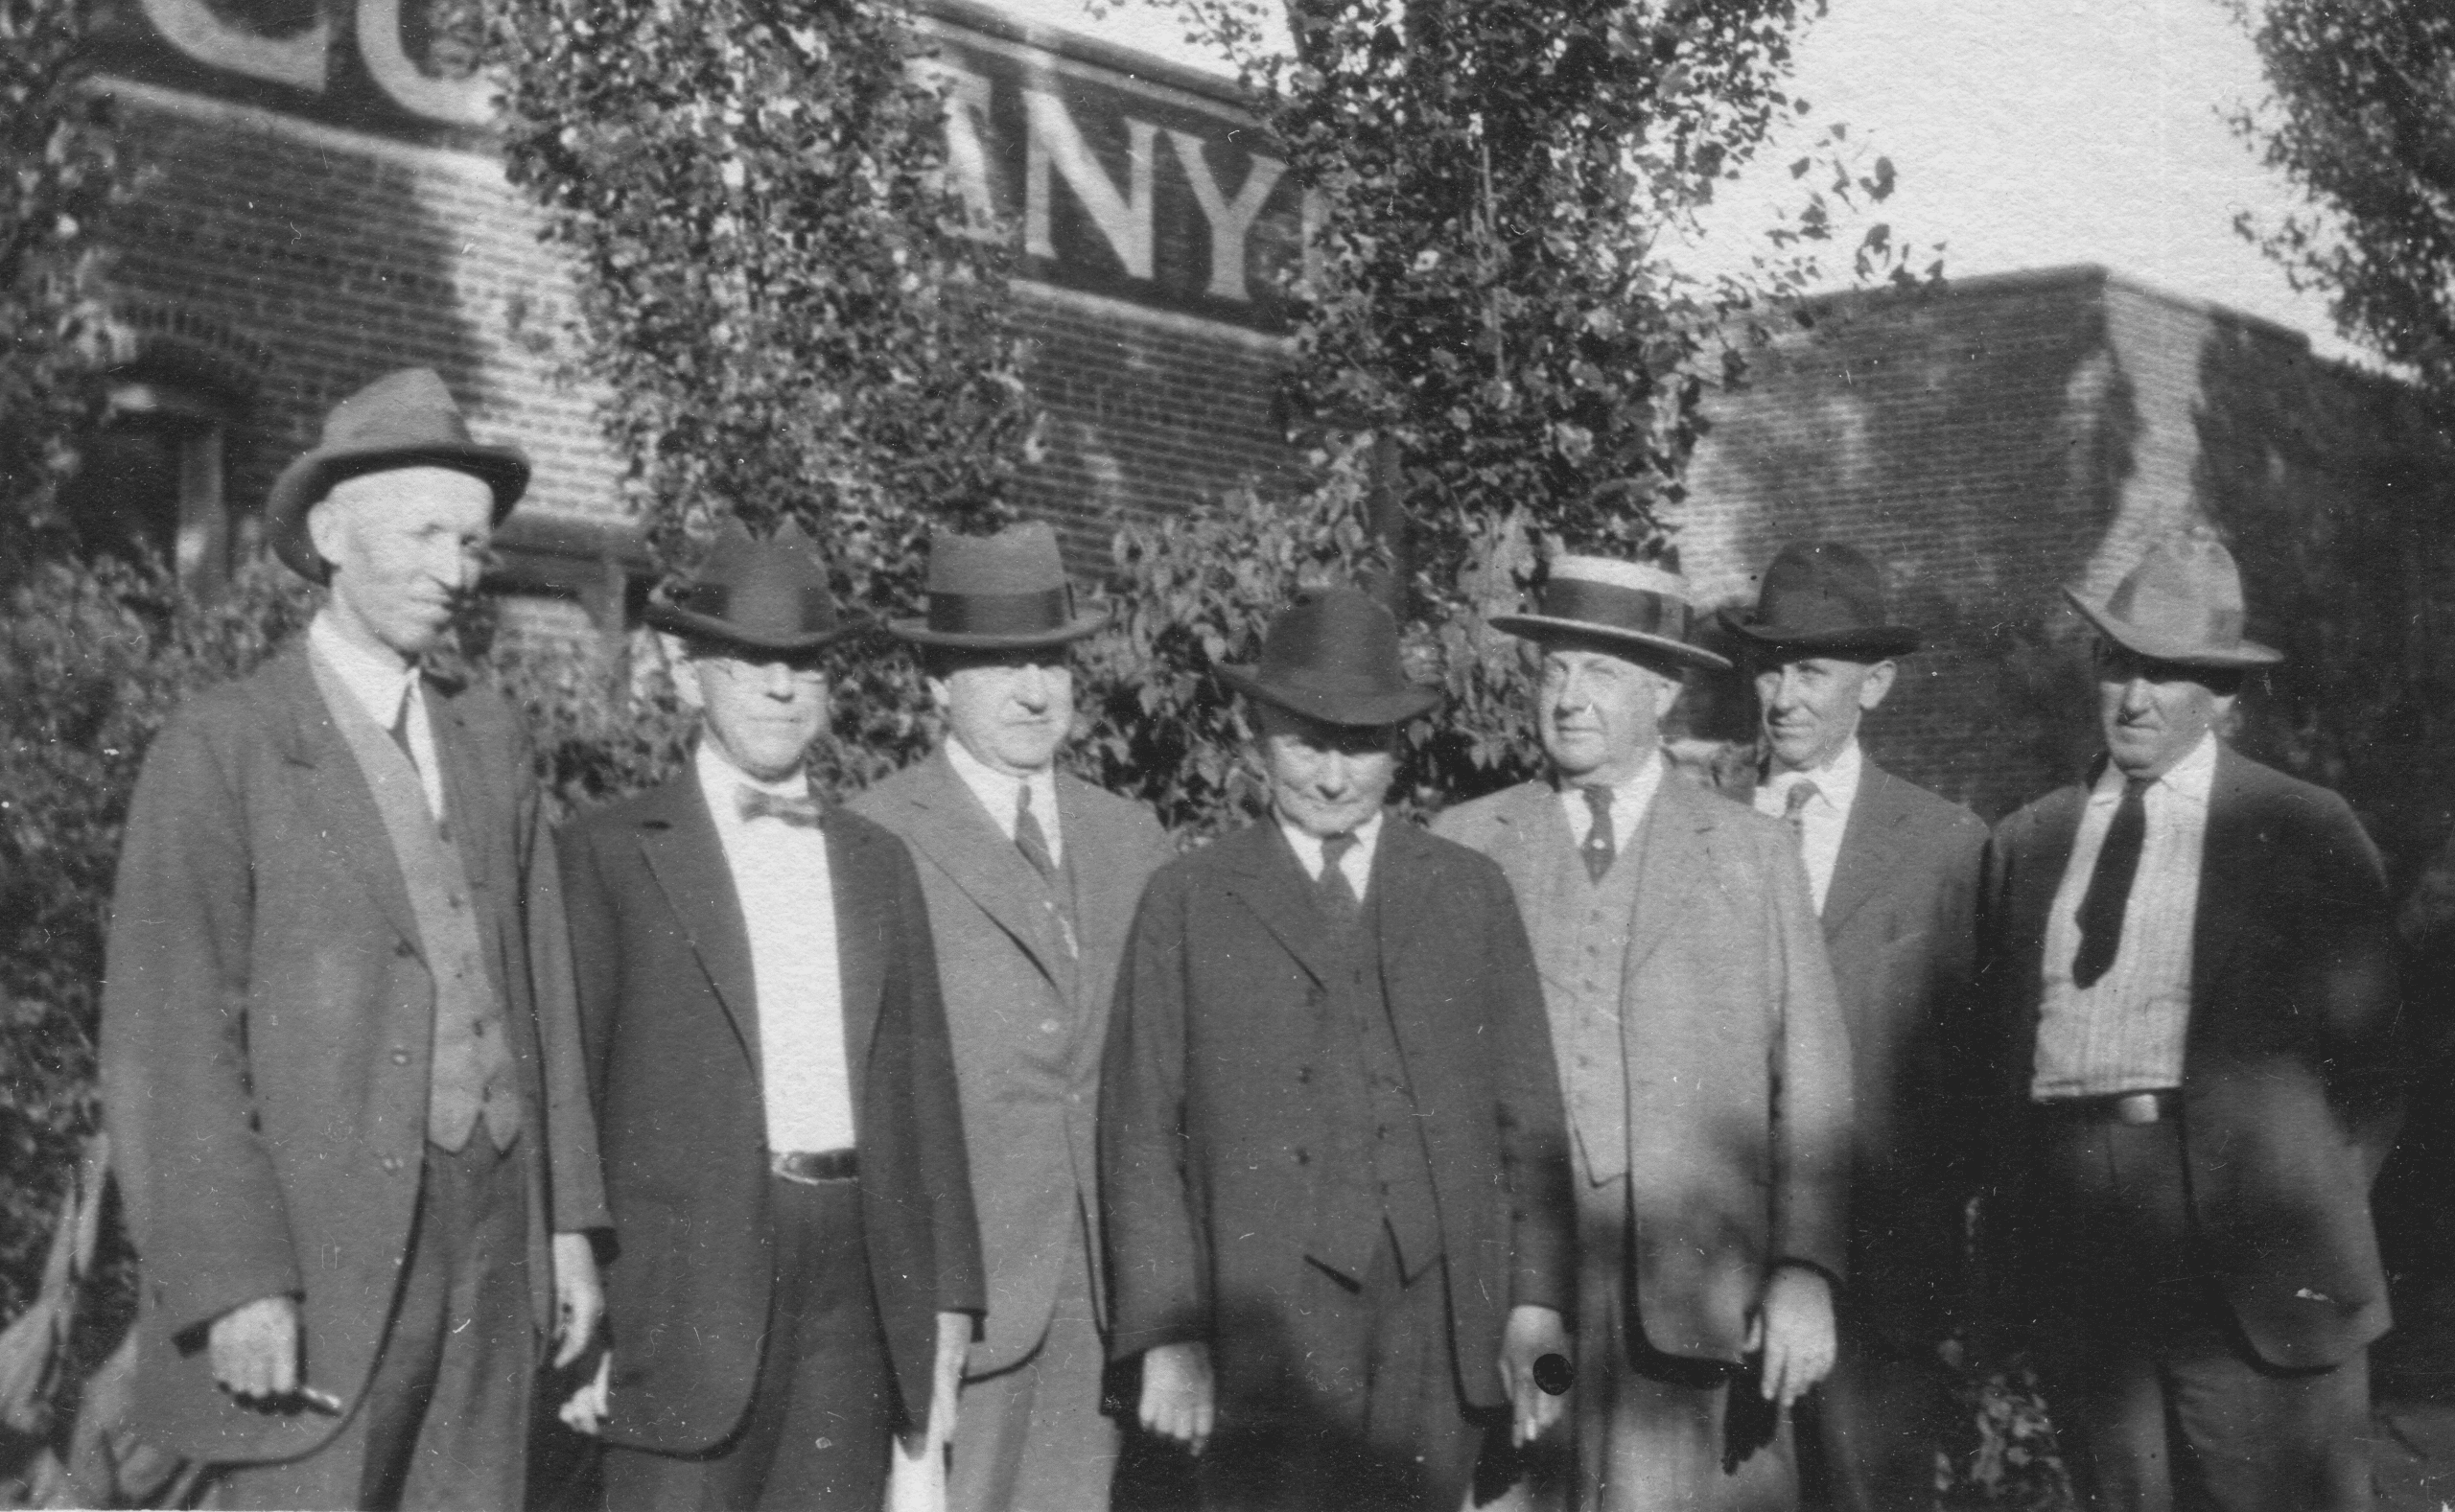 1920's – Newport's Leading Men